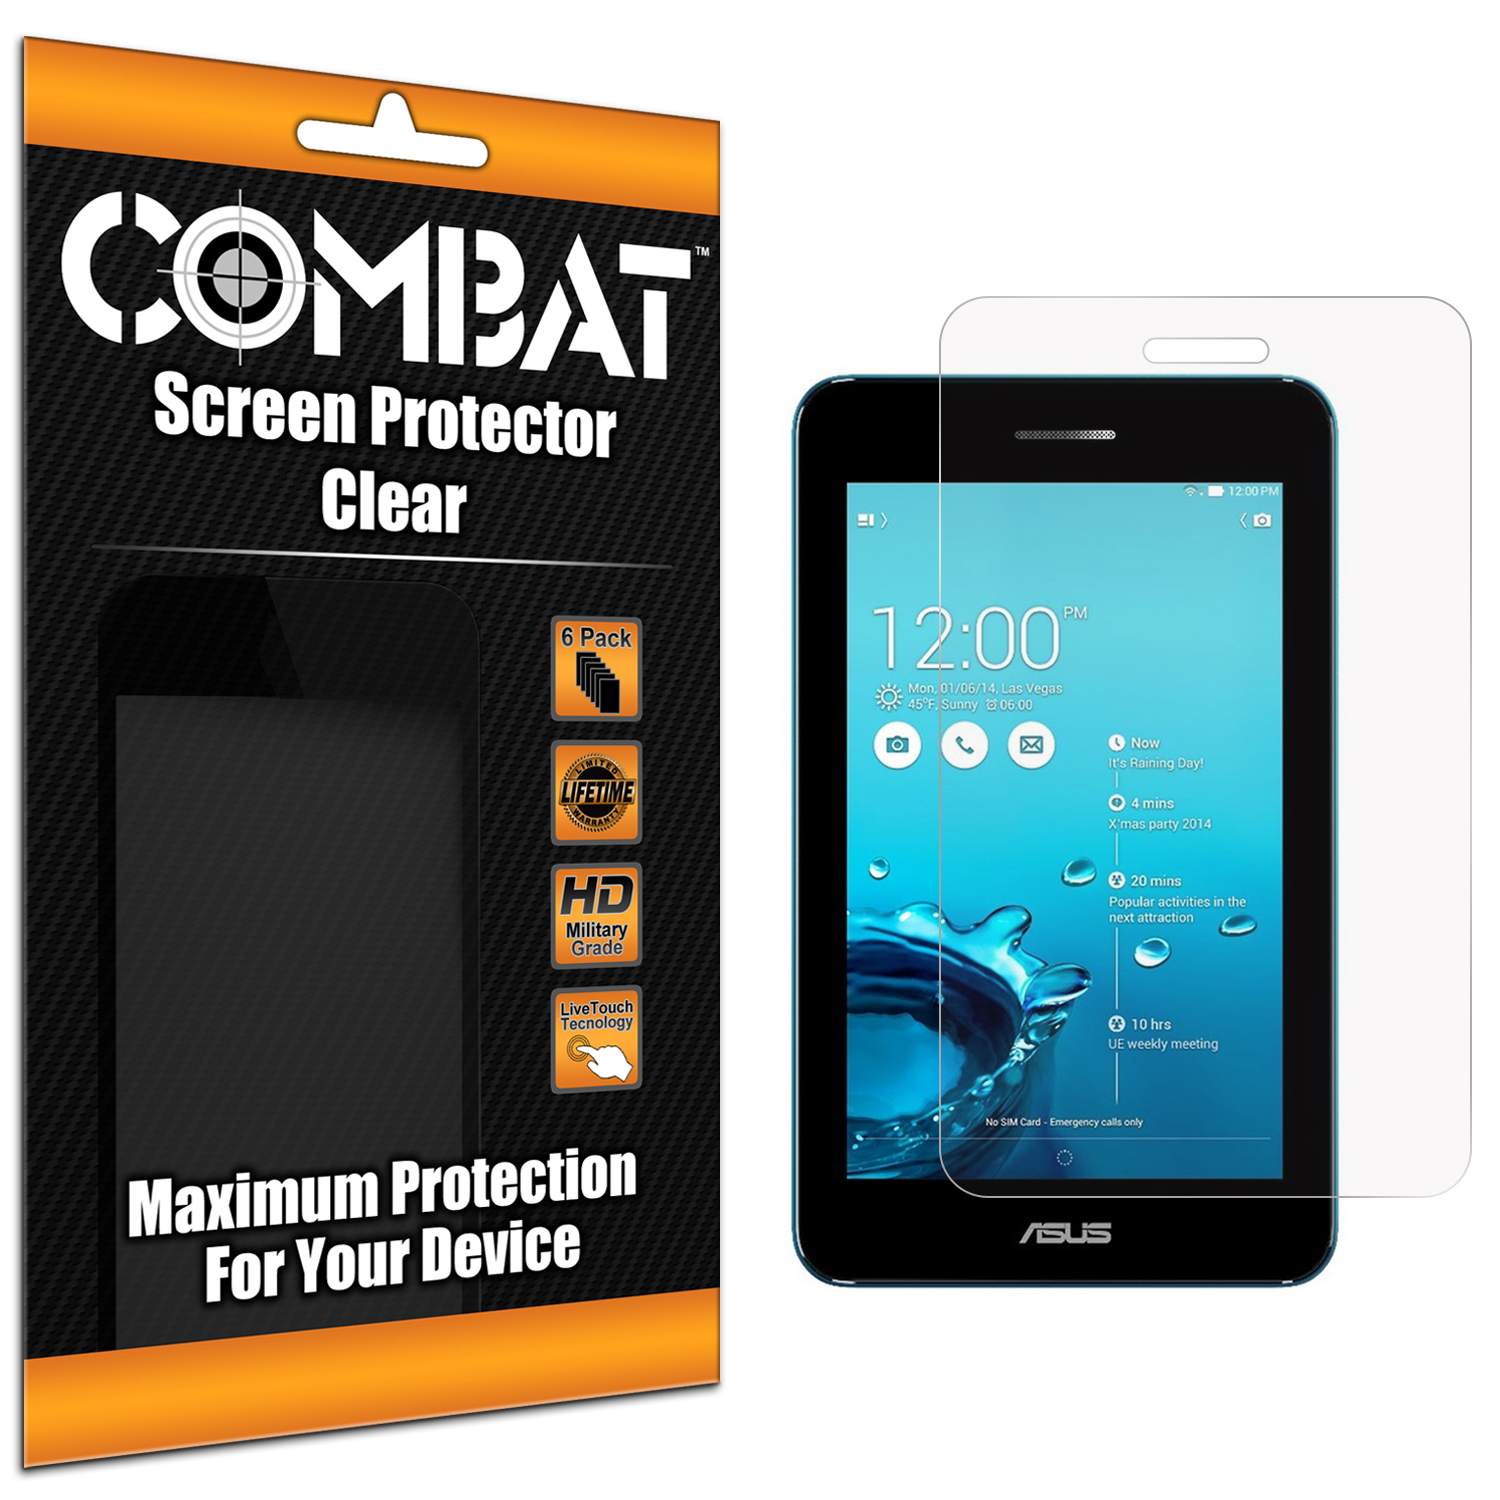 Asus PadFone X mini Clear Combat 6 Pack HD Clear Screen Protector